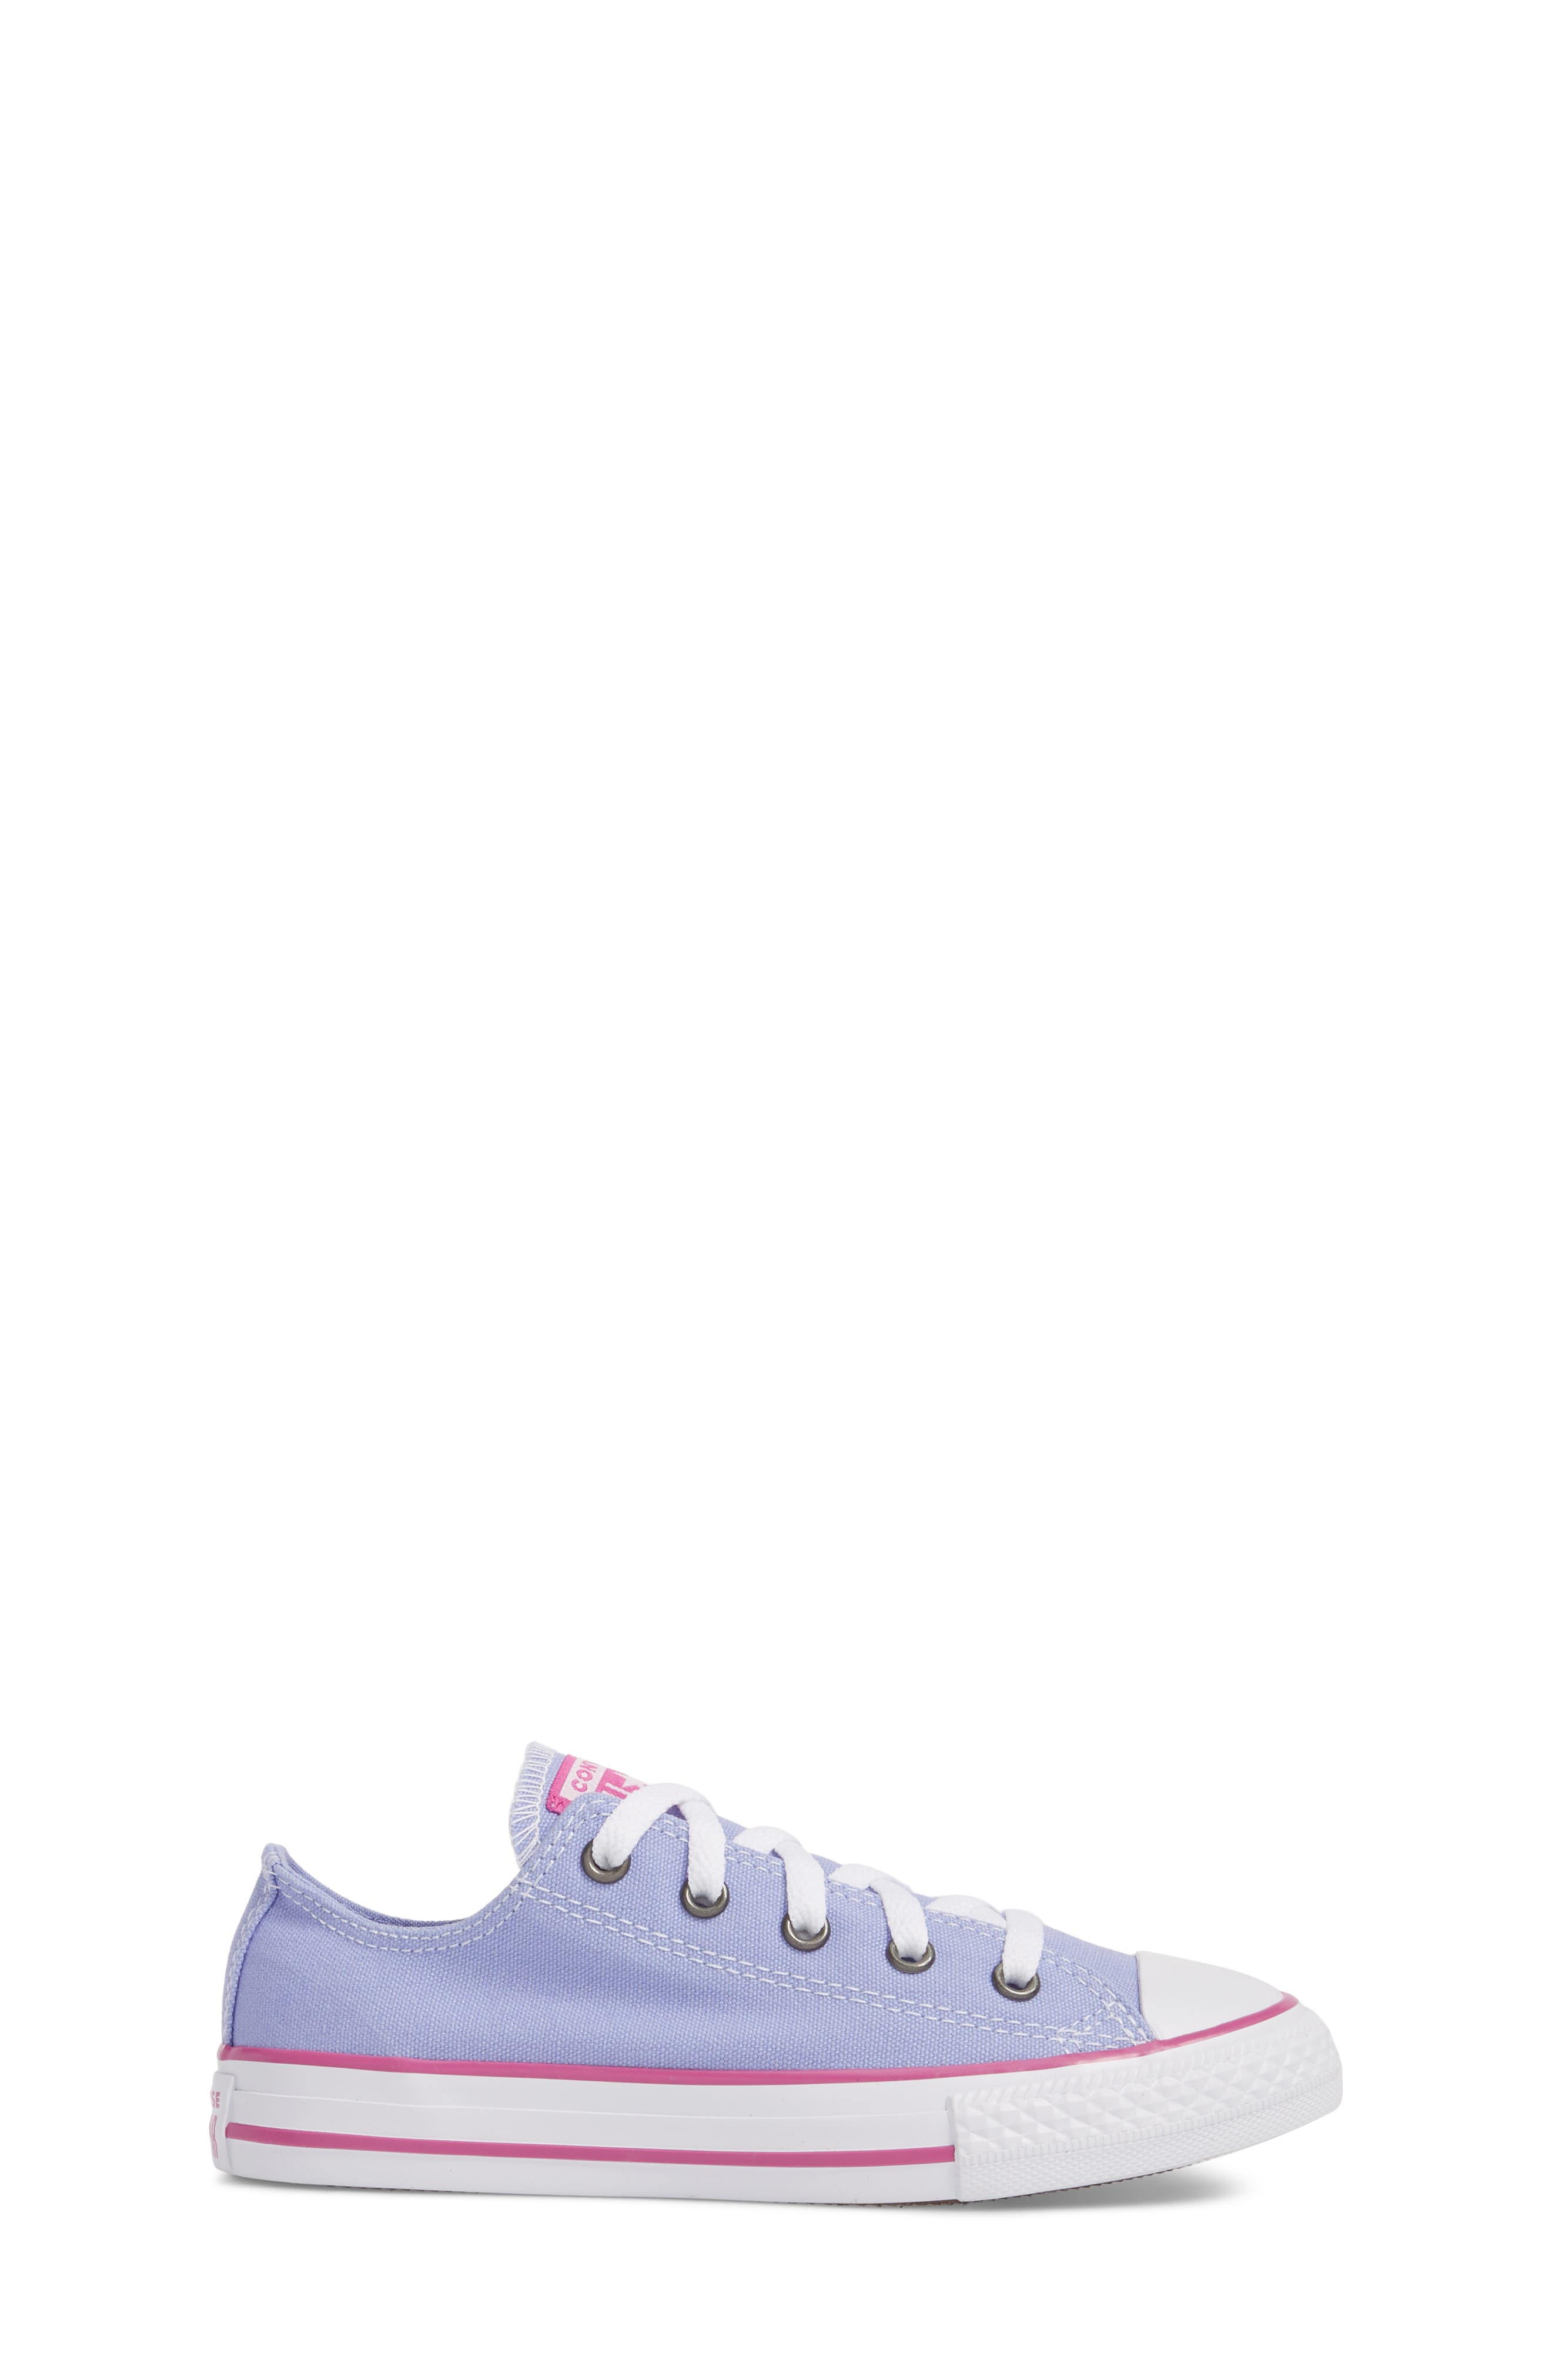 All Star<sup>®</sup> Low Top Sneaker,                             Alternate thumbnail 3, color,                             Twilight Purple